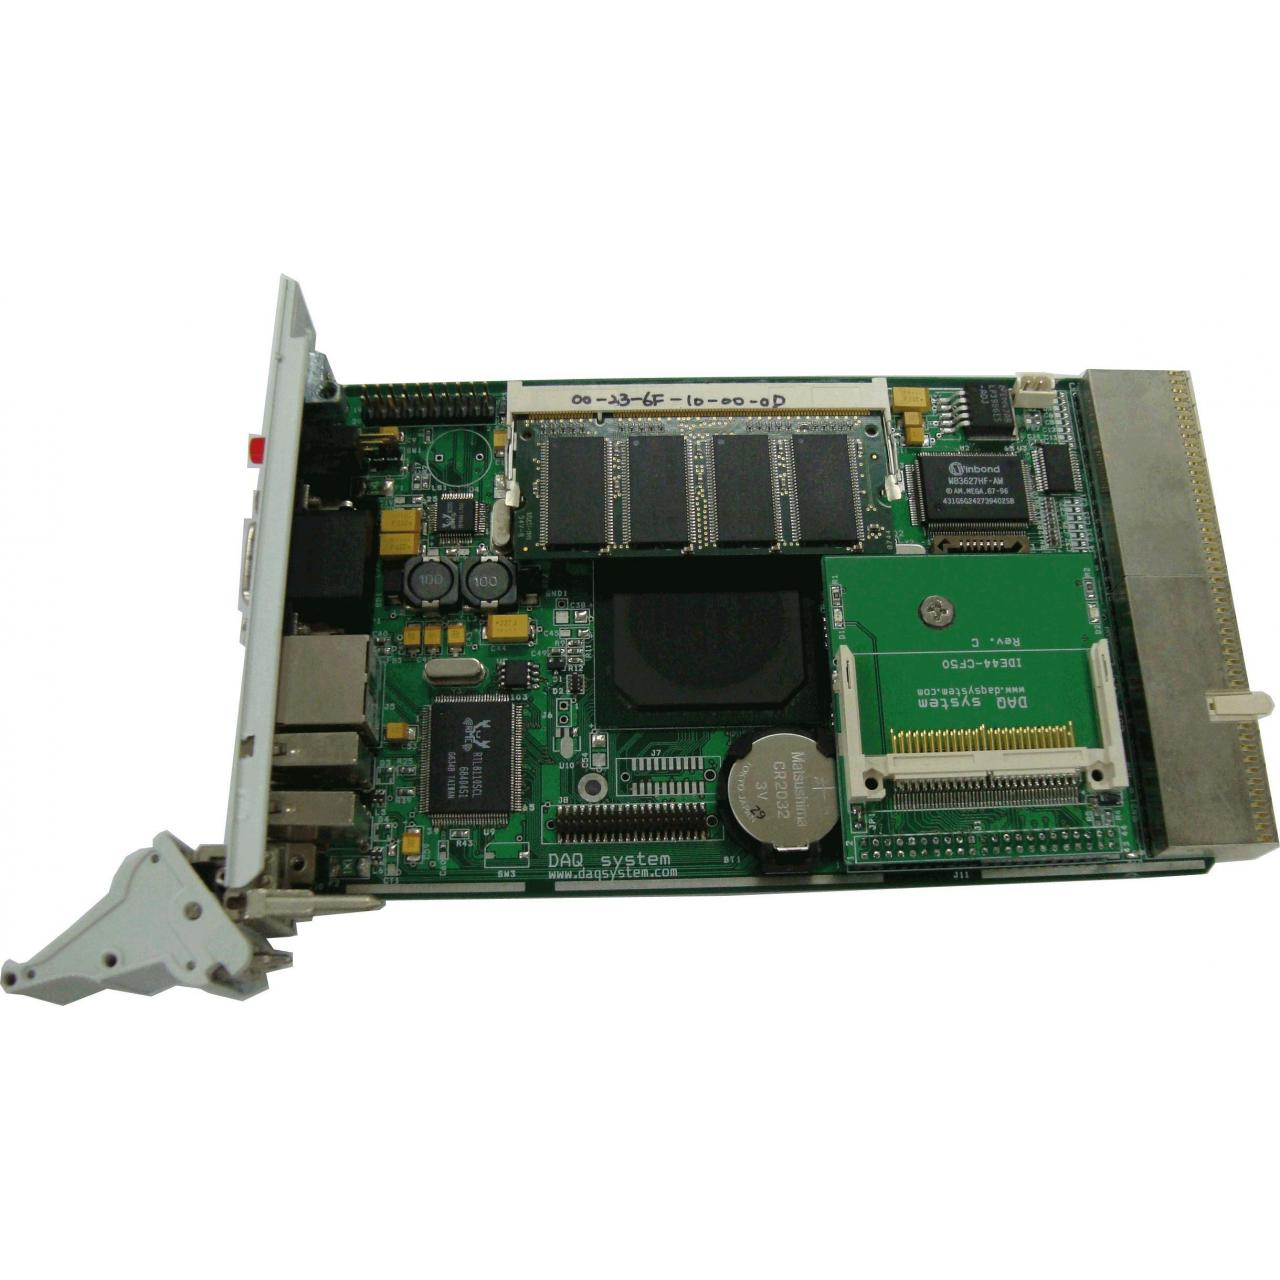 Buy cheap cPCI-SBC01 AMD Geode Processor Single Board Computer from wholesalers